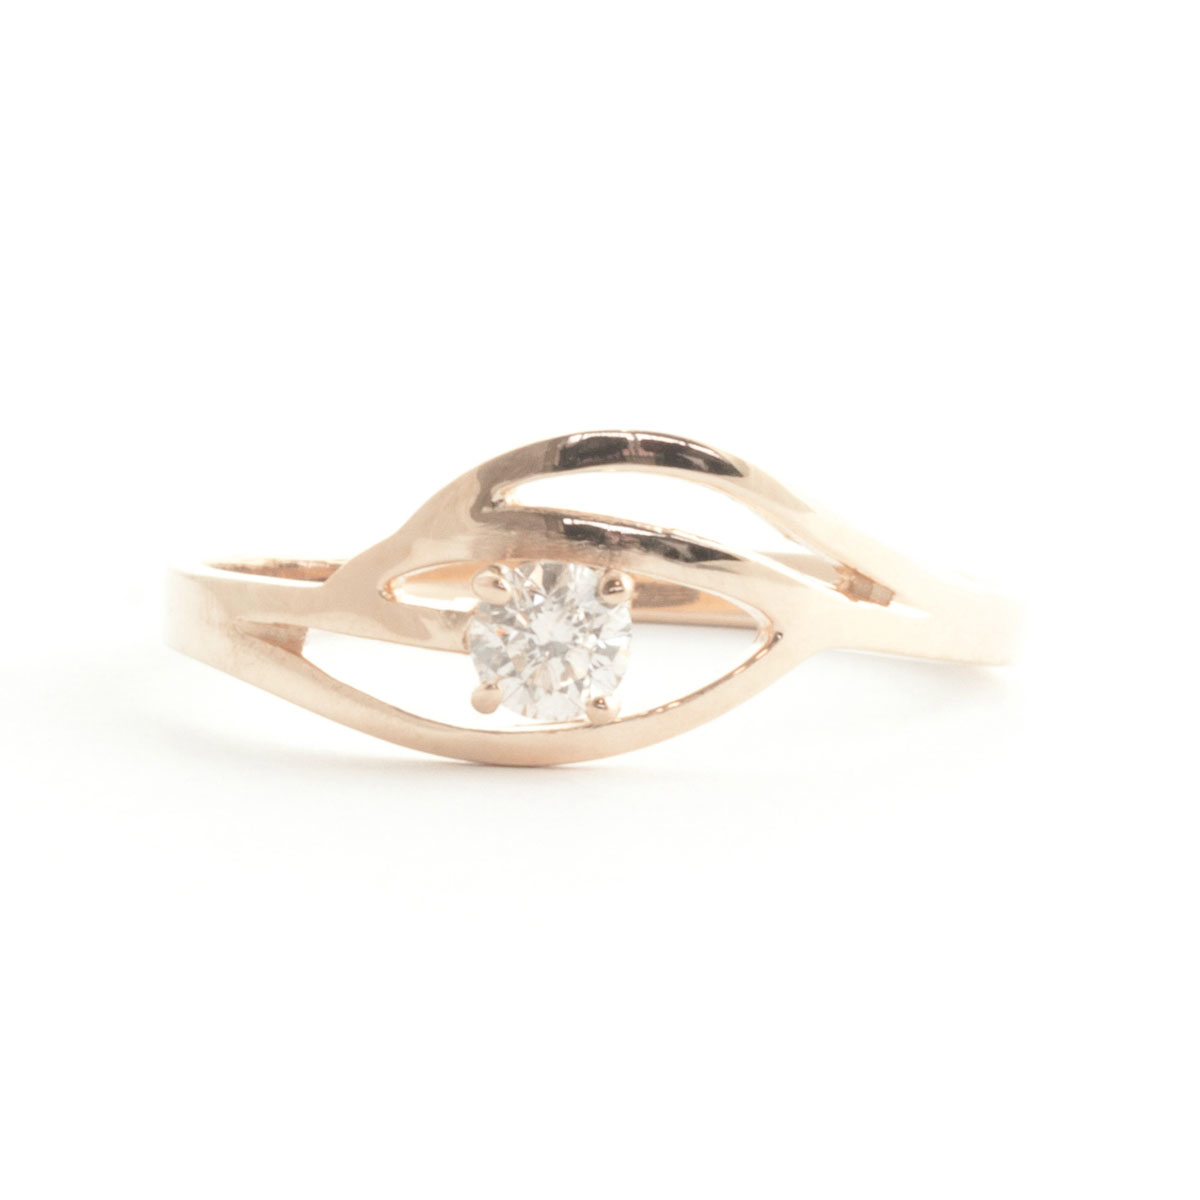 Round Cut Diamond Ring 0.15 ct in 18ct Rose Gold